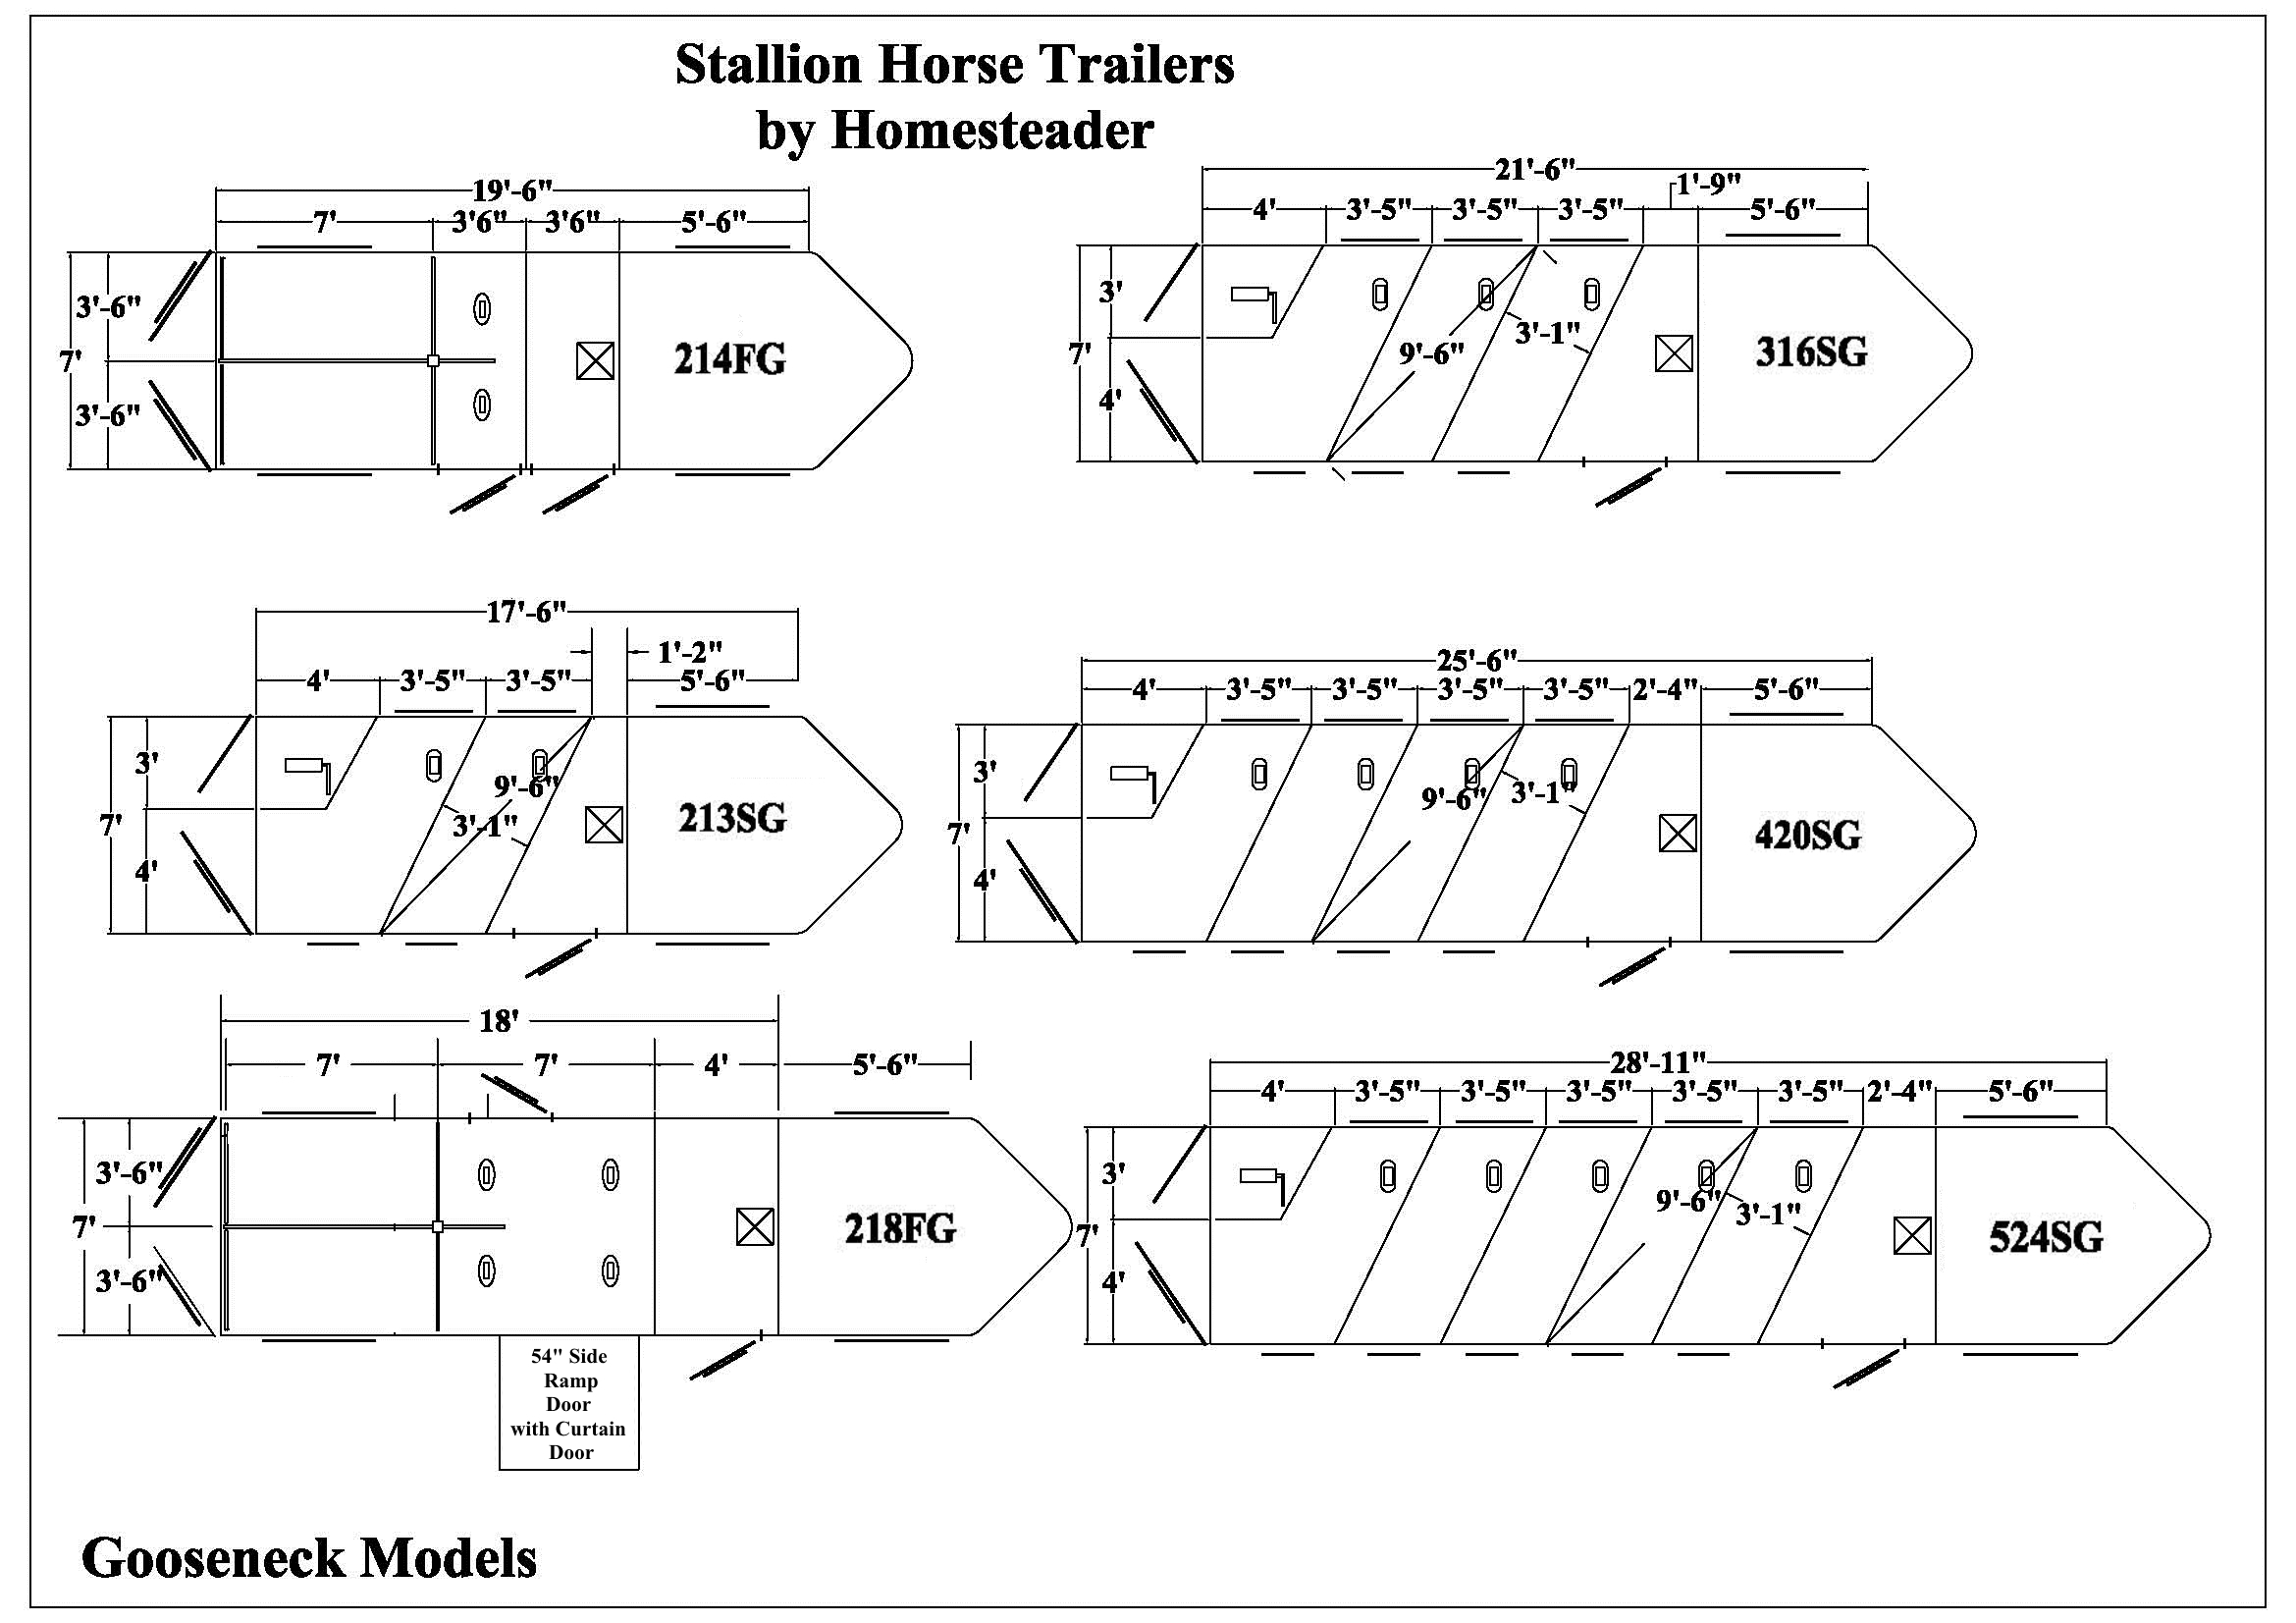 stallion horse trailers homesteader trailers